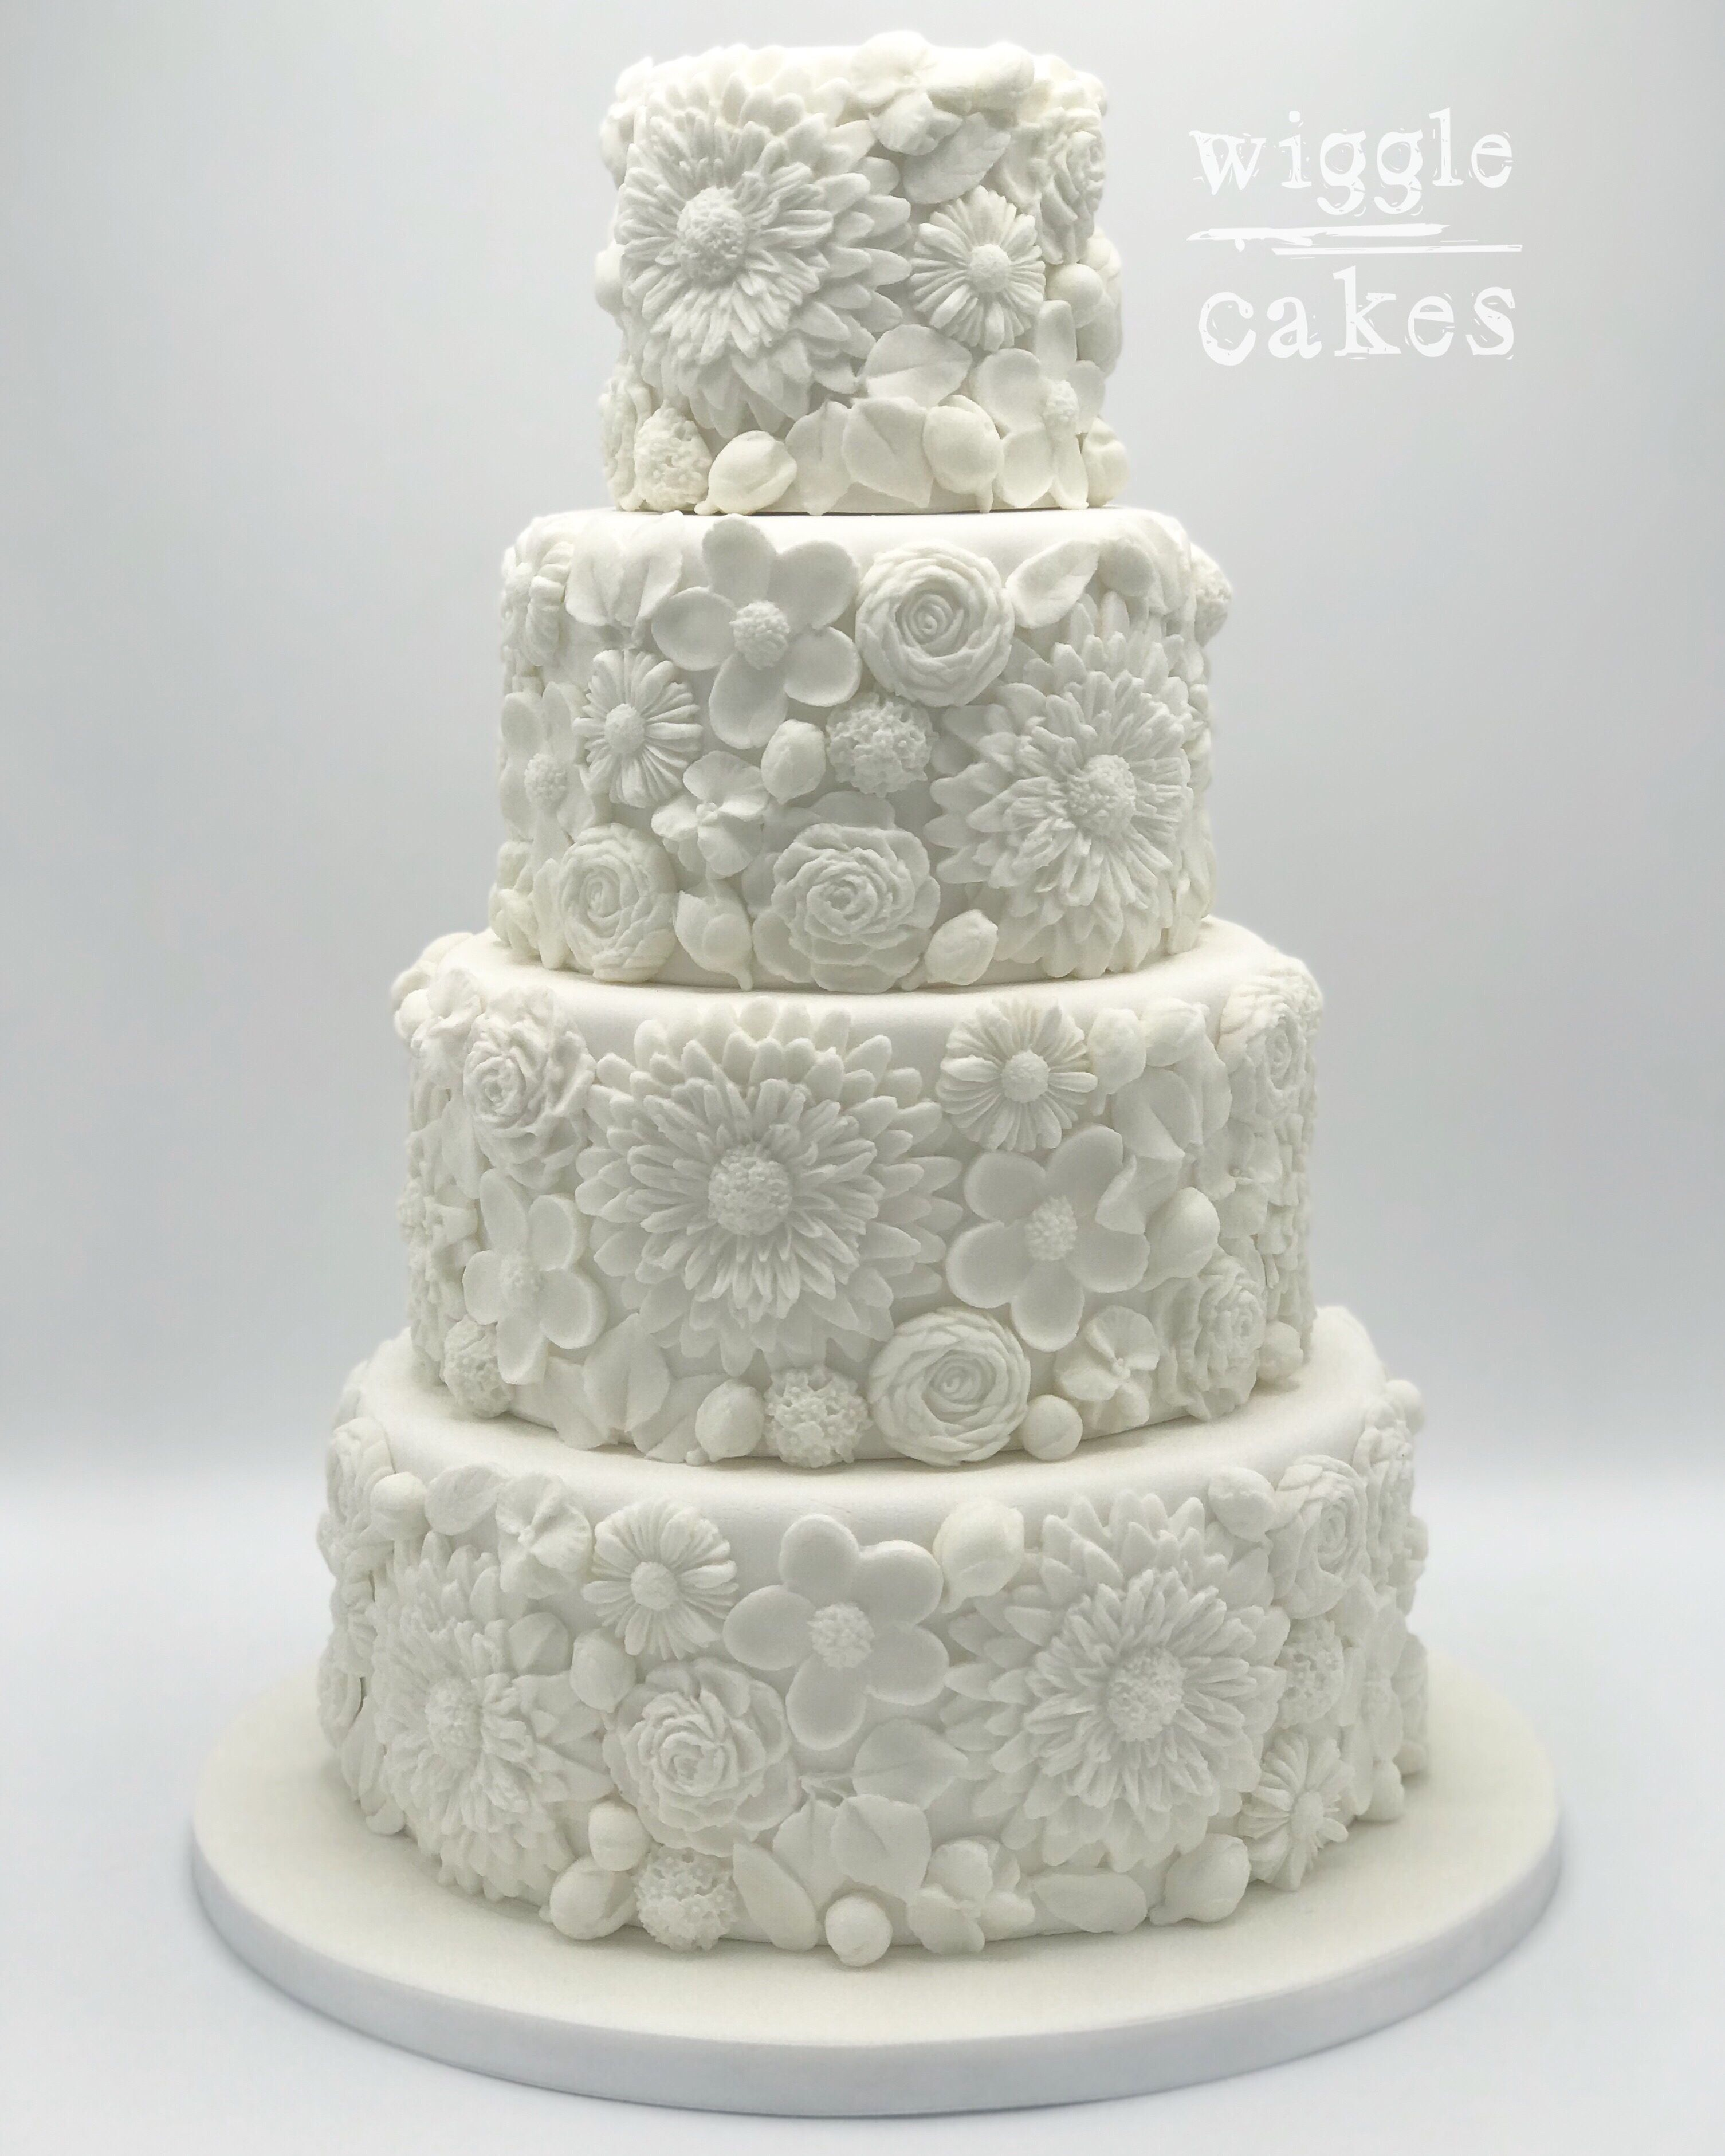 4 tier wedding cake covered in pretty edible white flowers | Wedding ...